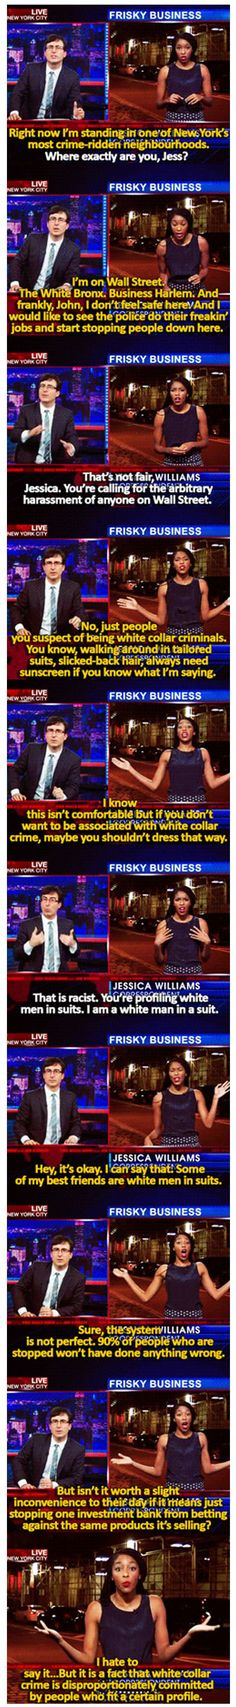 The Daily Show | John Oliver and Jessica Williams show how 'stop & frisk' is racist.